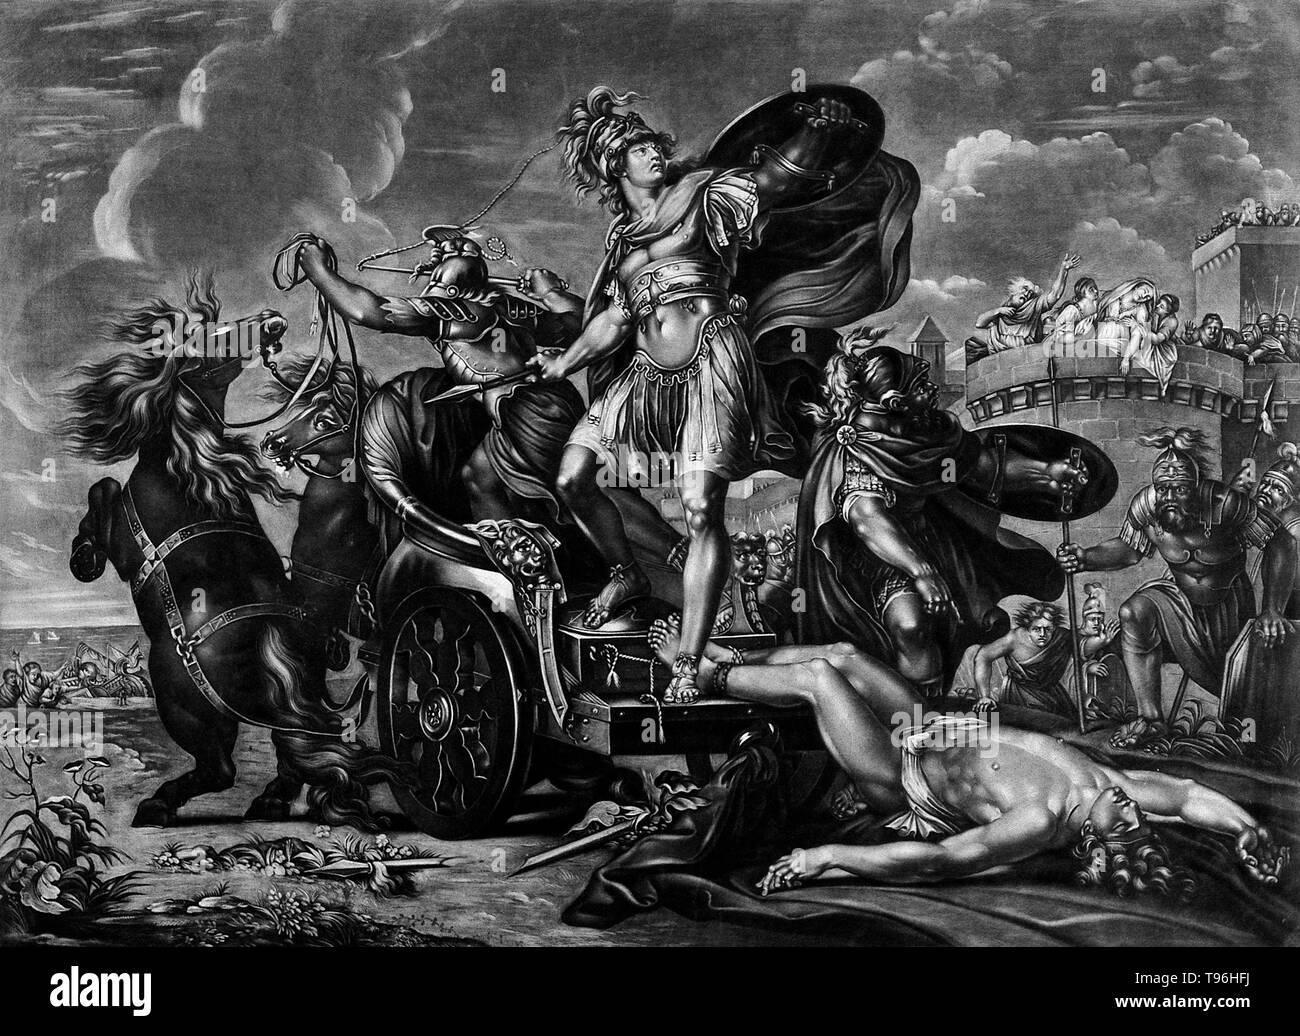 Achilles dragging the body of Hector around Troy. In Greek mythology, Achilles was a Greek hero of the Trojan War, the central character and the greatest warrior of Homer's Iliad. Legends state that Achilles was invulnerable in all of his body except for his heel. He died because of a small wound on his heel, thus the term Achilles' heel has come to mean a person's principal weakness.  Hector was a Trojan prince and the greatest fighter for Troy. Achilles defeated Hector in combat, he then slit Hector's heels and passed the girdle that Ajax had given Hector through the slits. He then fastened  - Stock Image